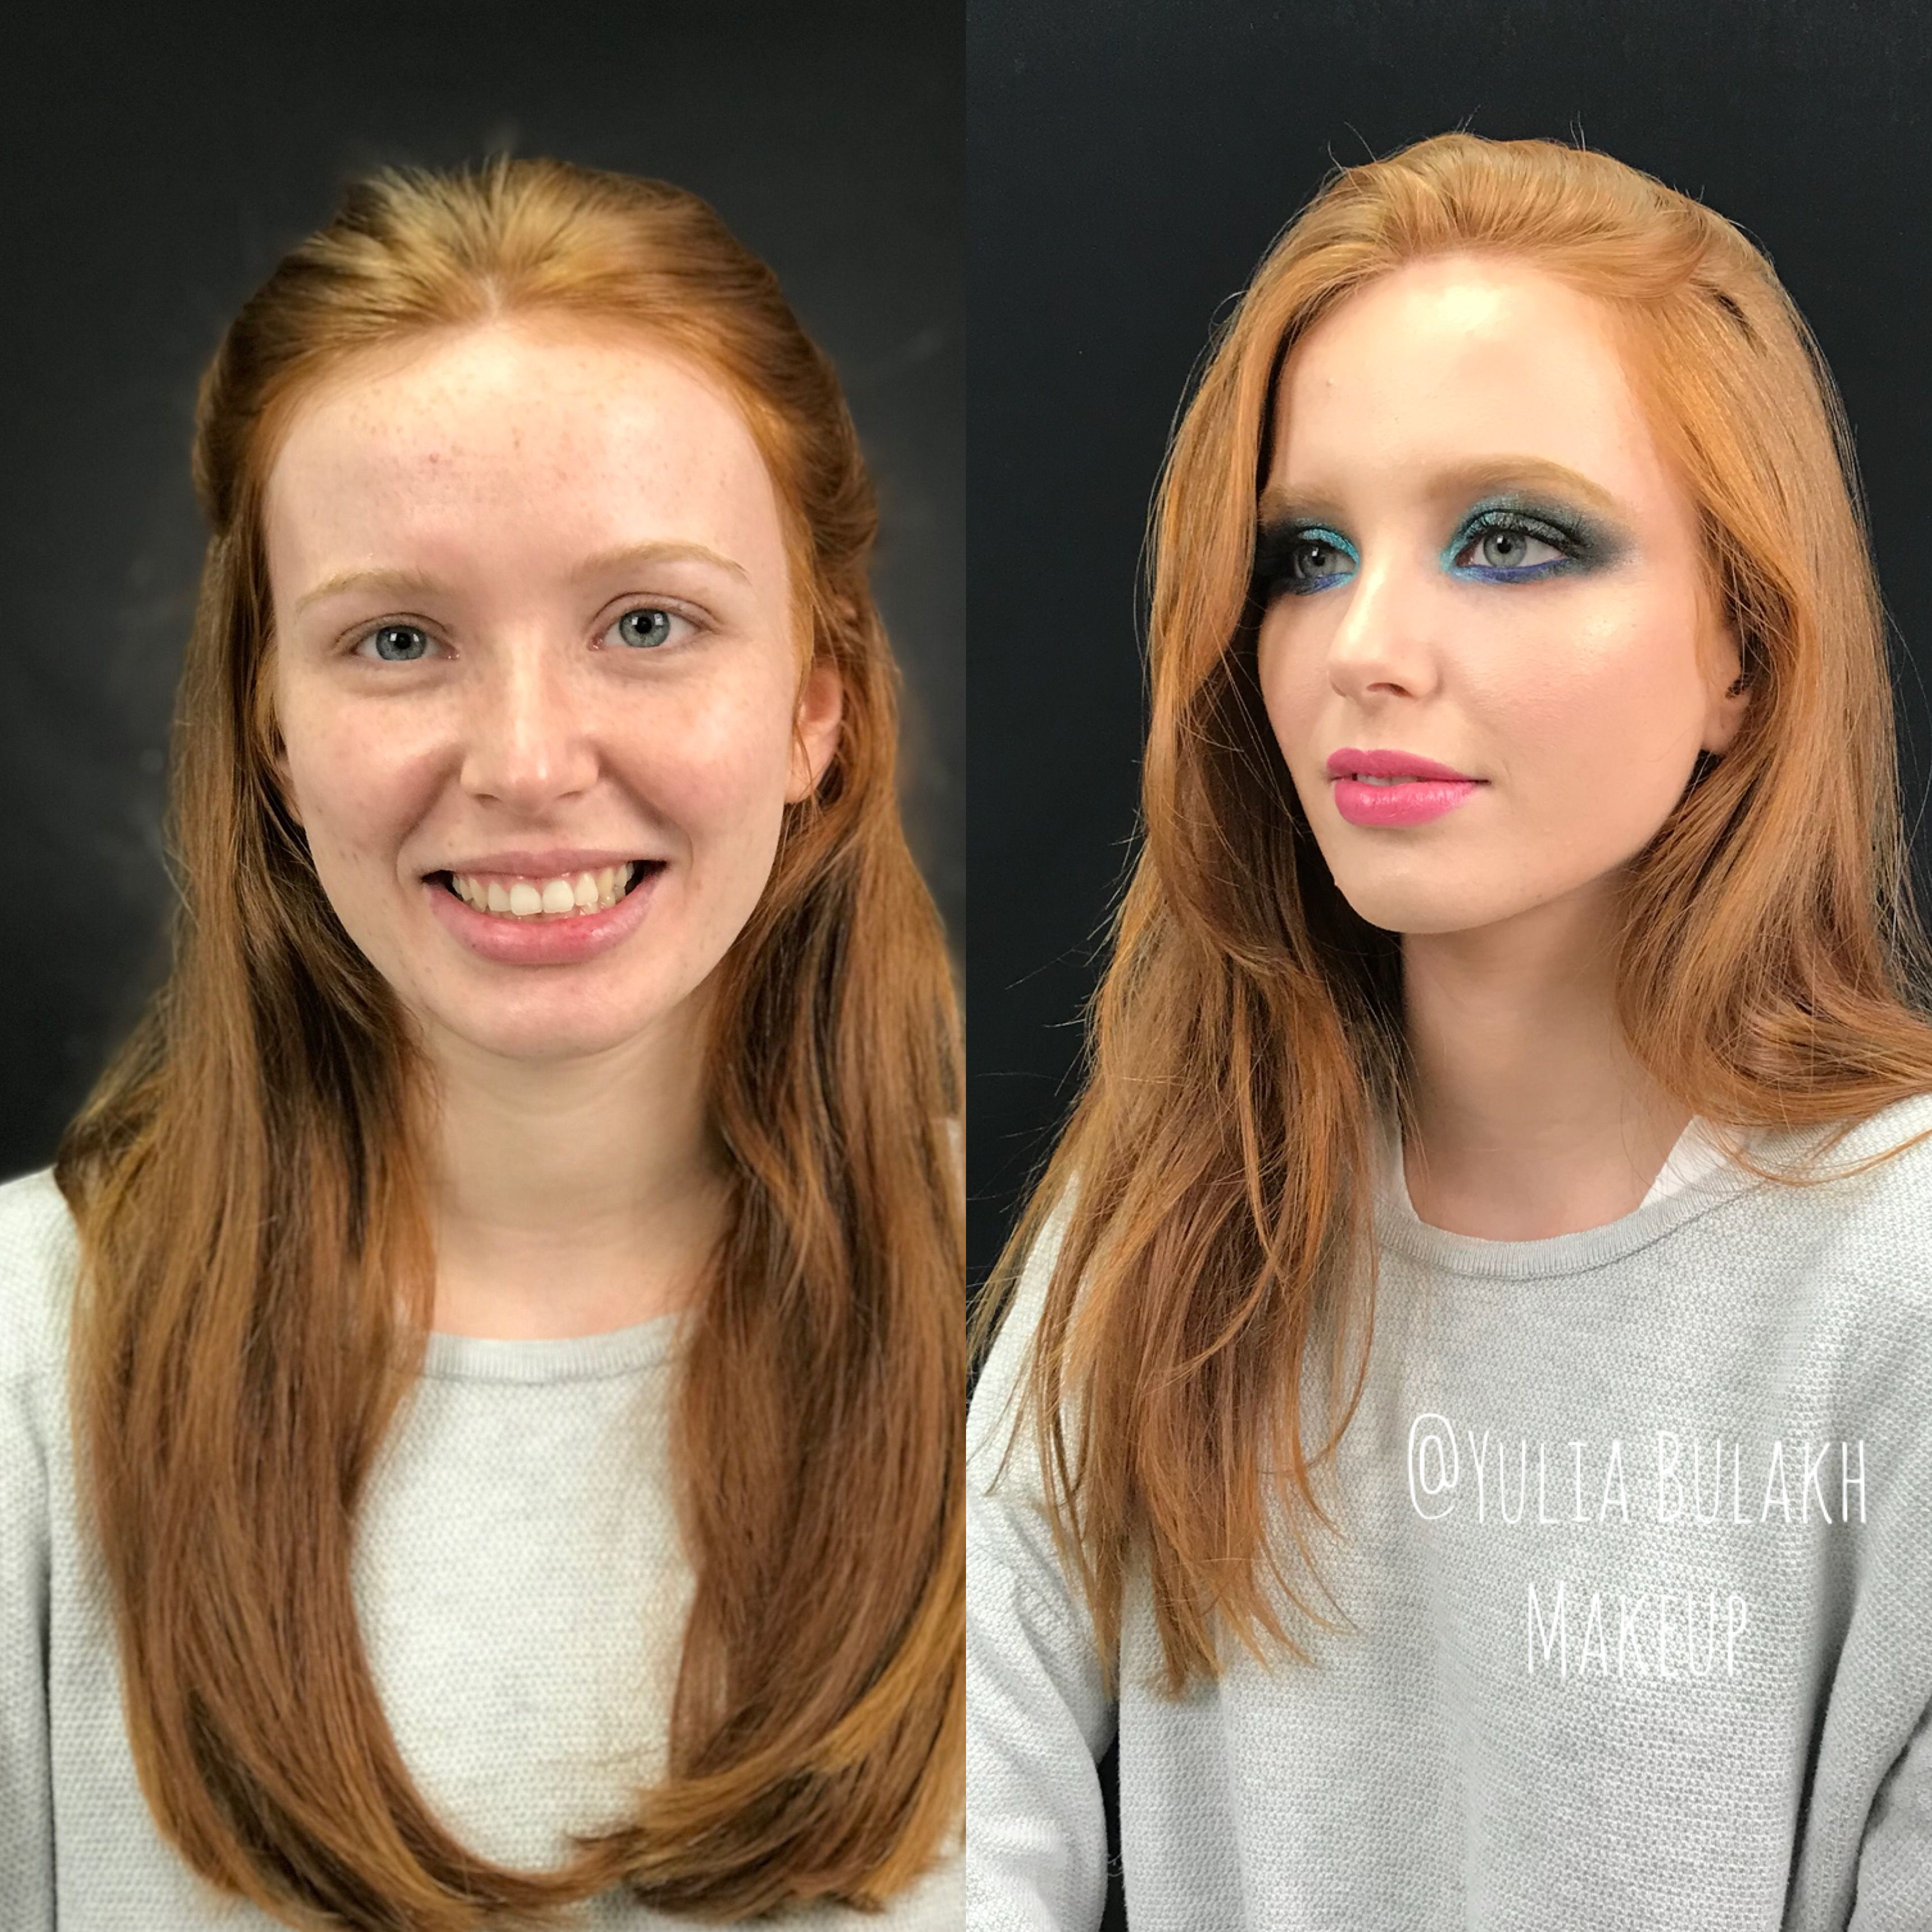 Makeup in Spain. Makeup before & after. Makeup and